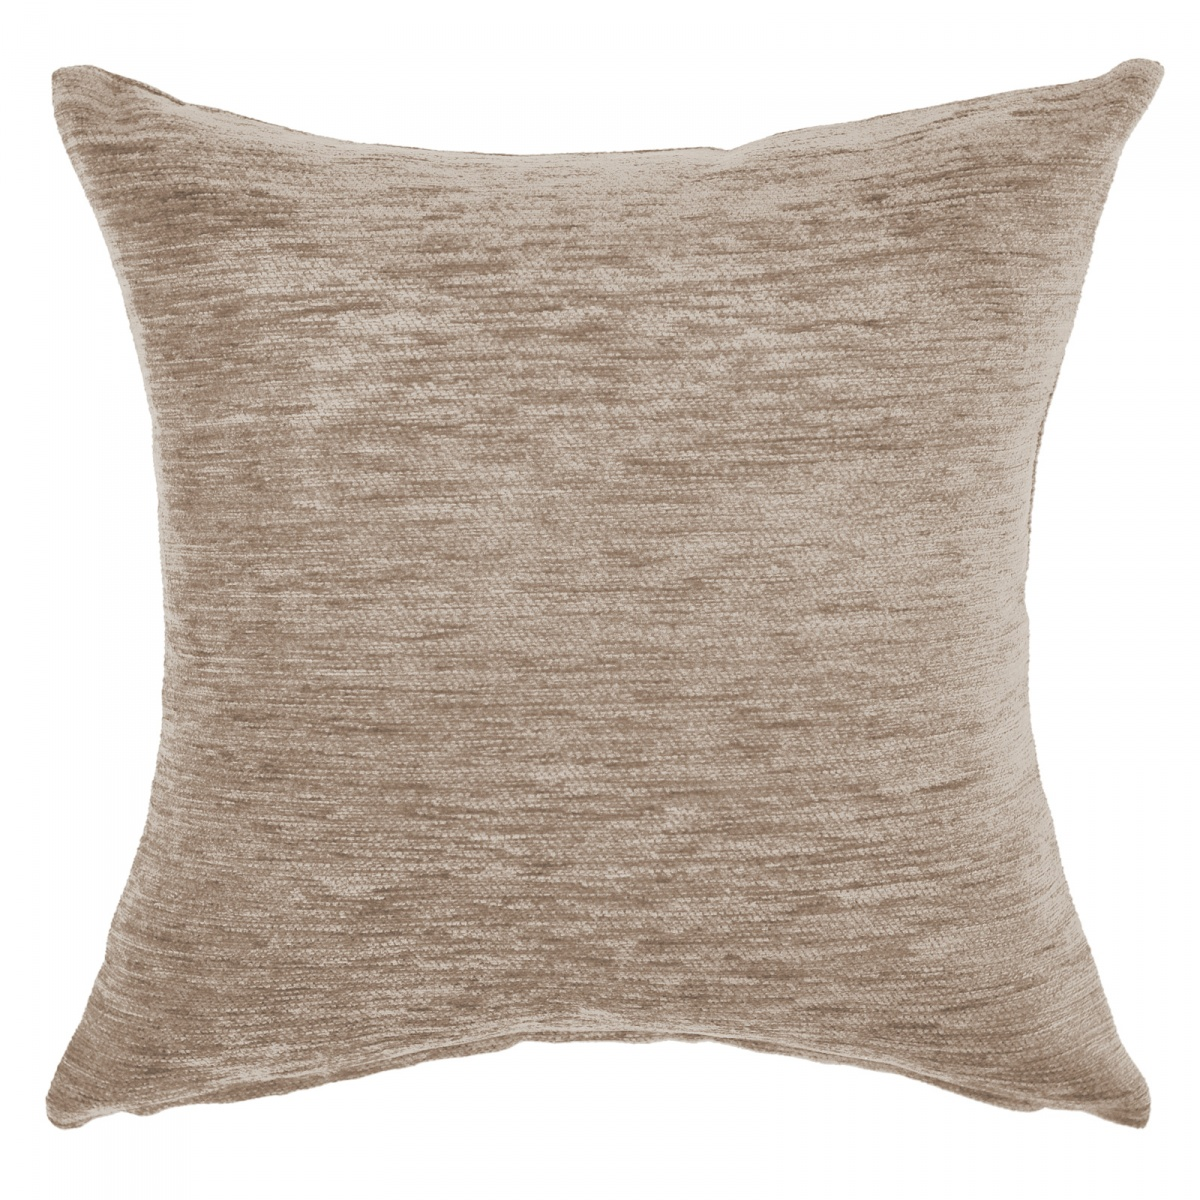 Vitani French Cushion - 45x45cm